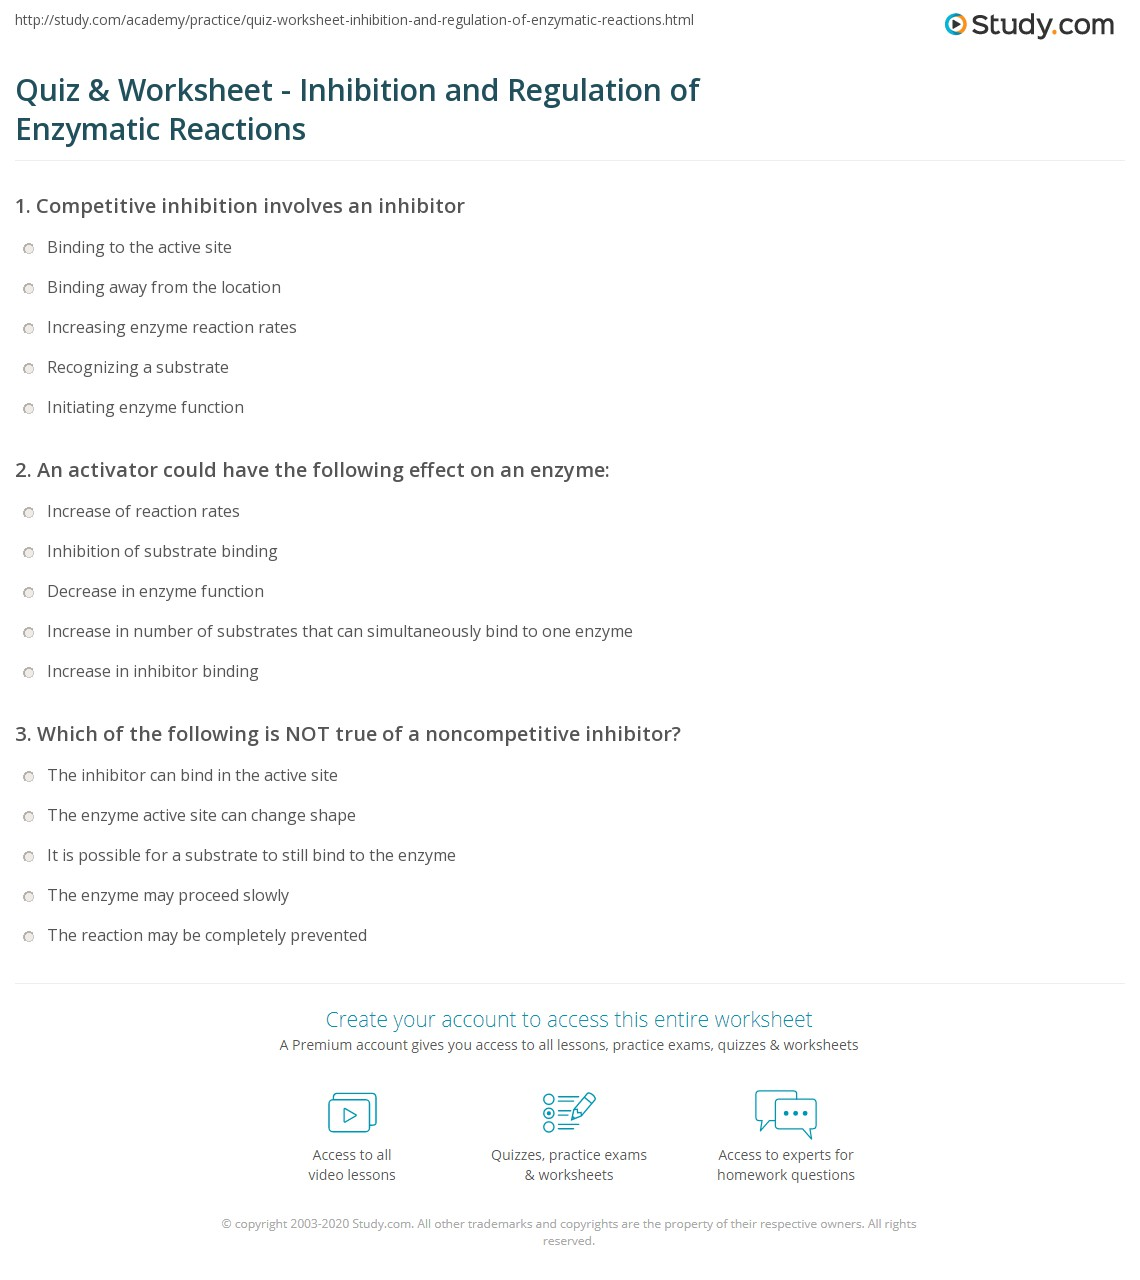 quiz worksheet inhibition and regulation of enzymatic reactions. Black Bedroom Furniture Sets. Home Design Ideas